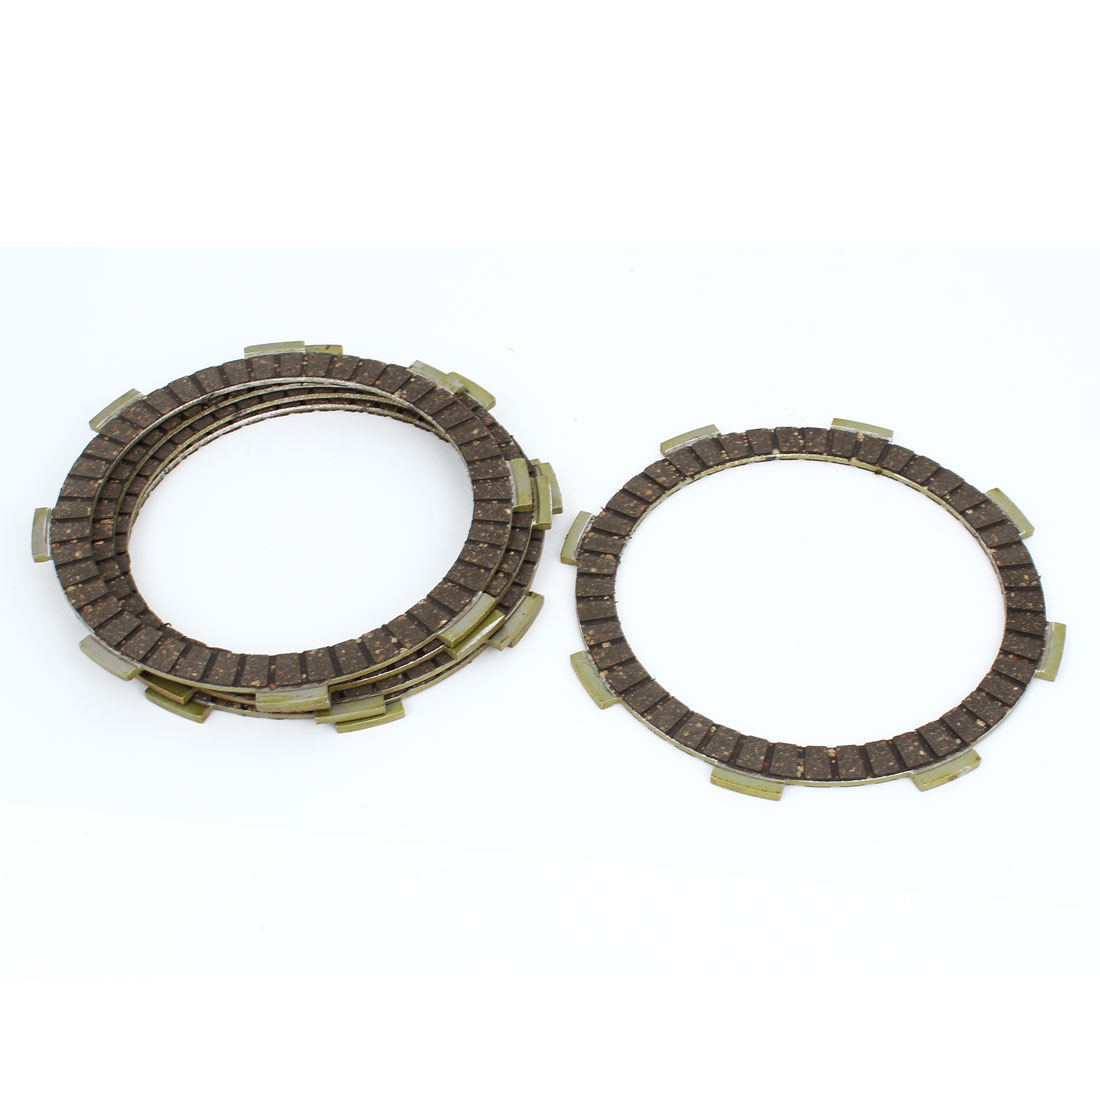 Motorcycle Autobike Clutch Plates Assembly 5 Pcs for Honda CG125